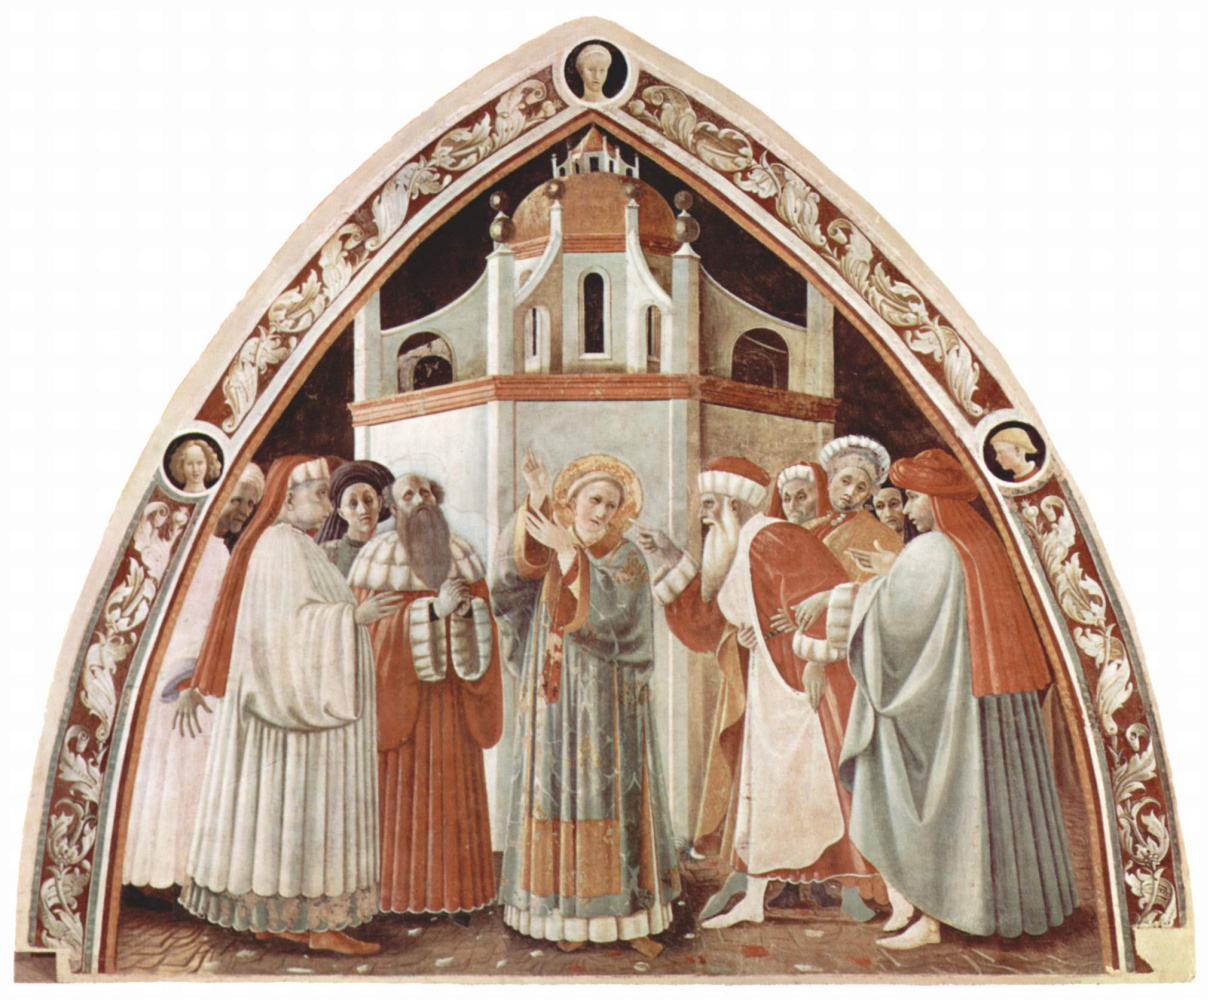 Paolo Uccello. The frescoes of the Cathedral in Prato. SV. Stefan